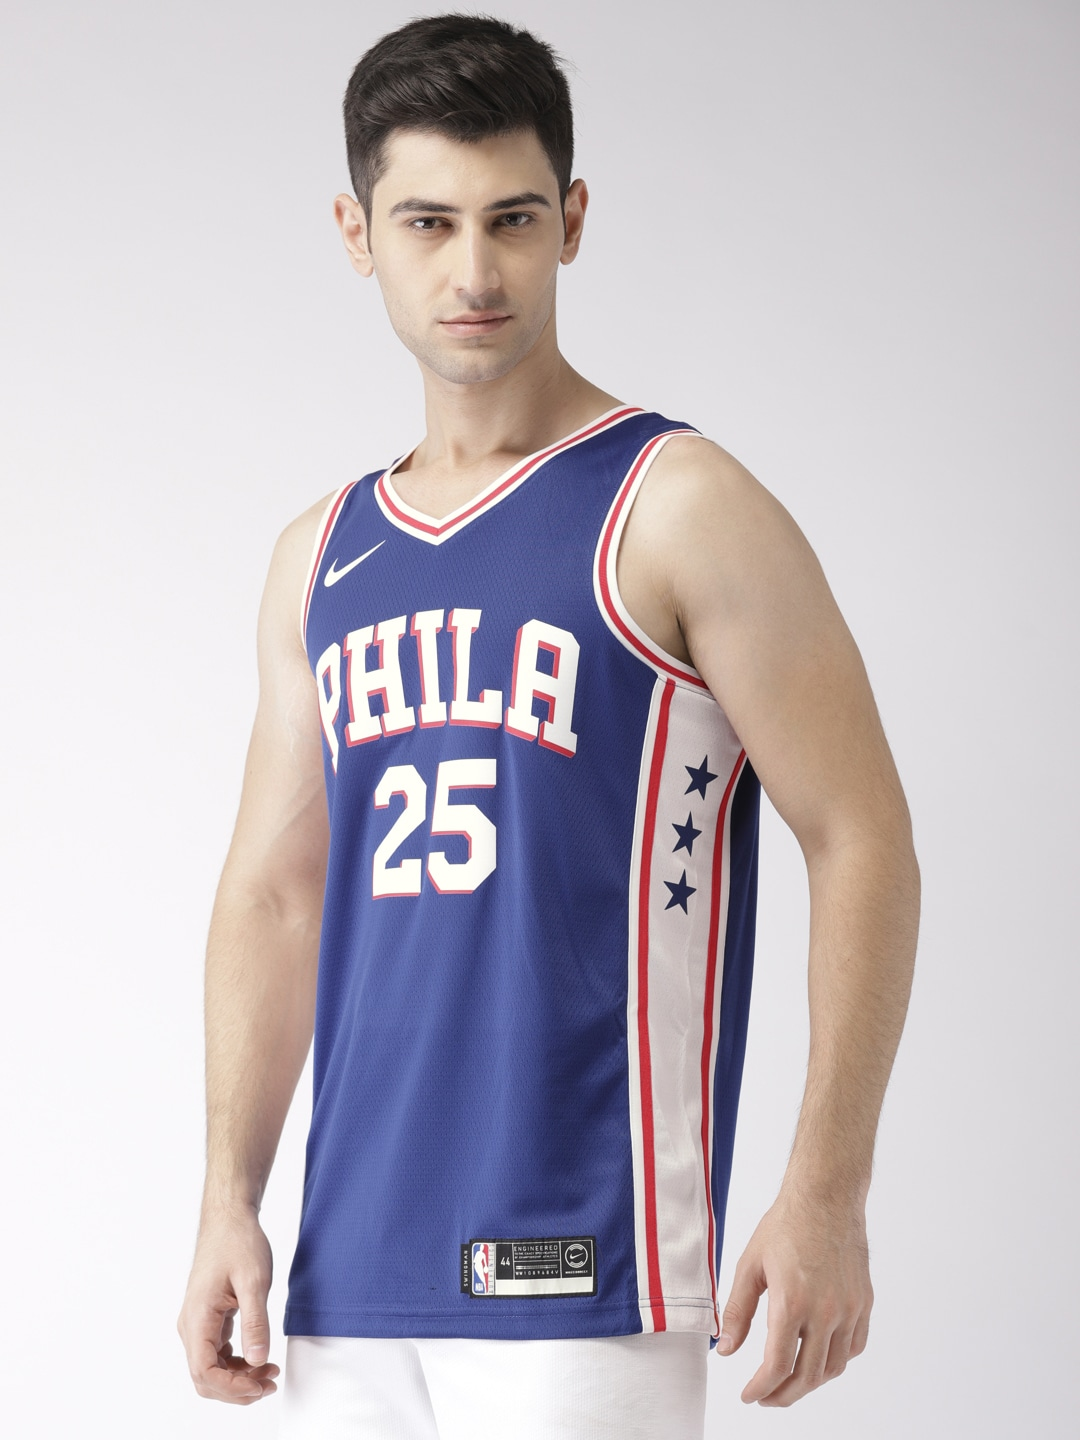 231b4ddb6cd01b Nike Sleeveless Tshirts - Buy Nike Sleeveless Tshirts online in India